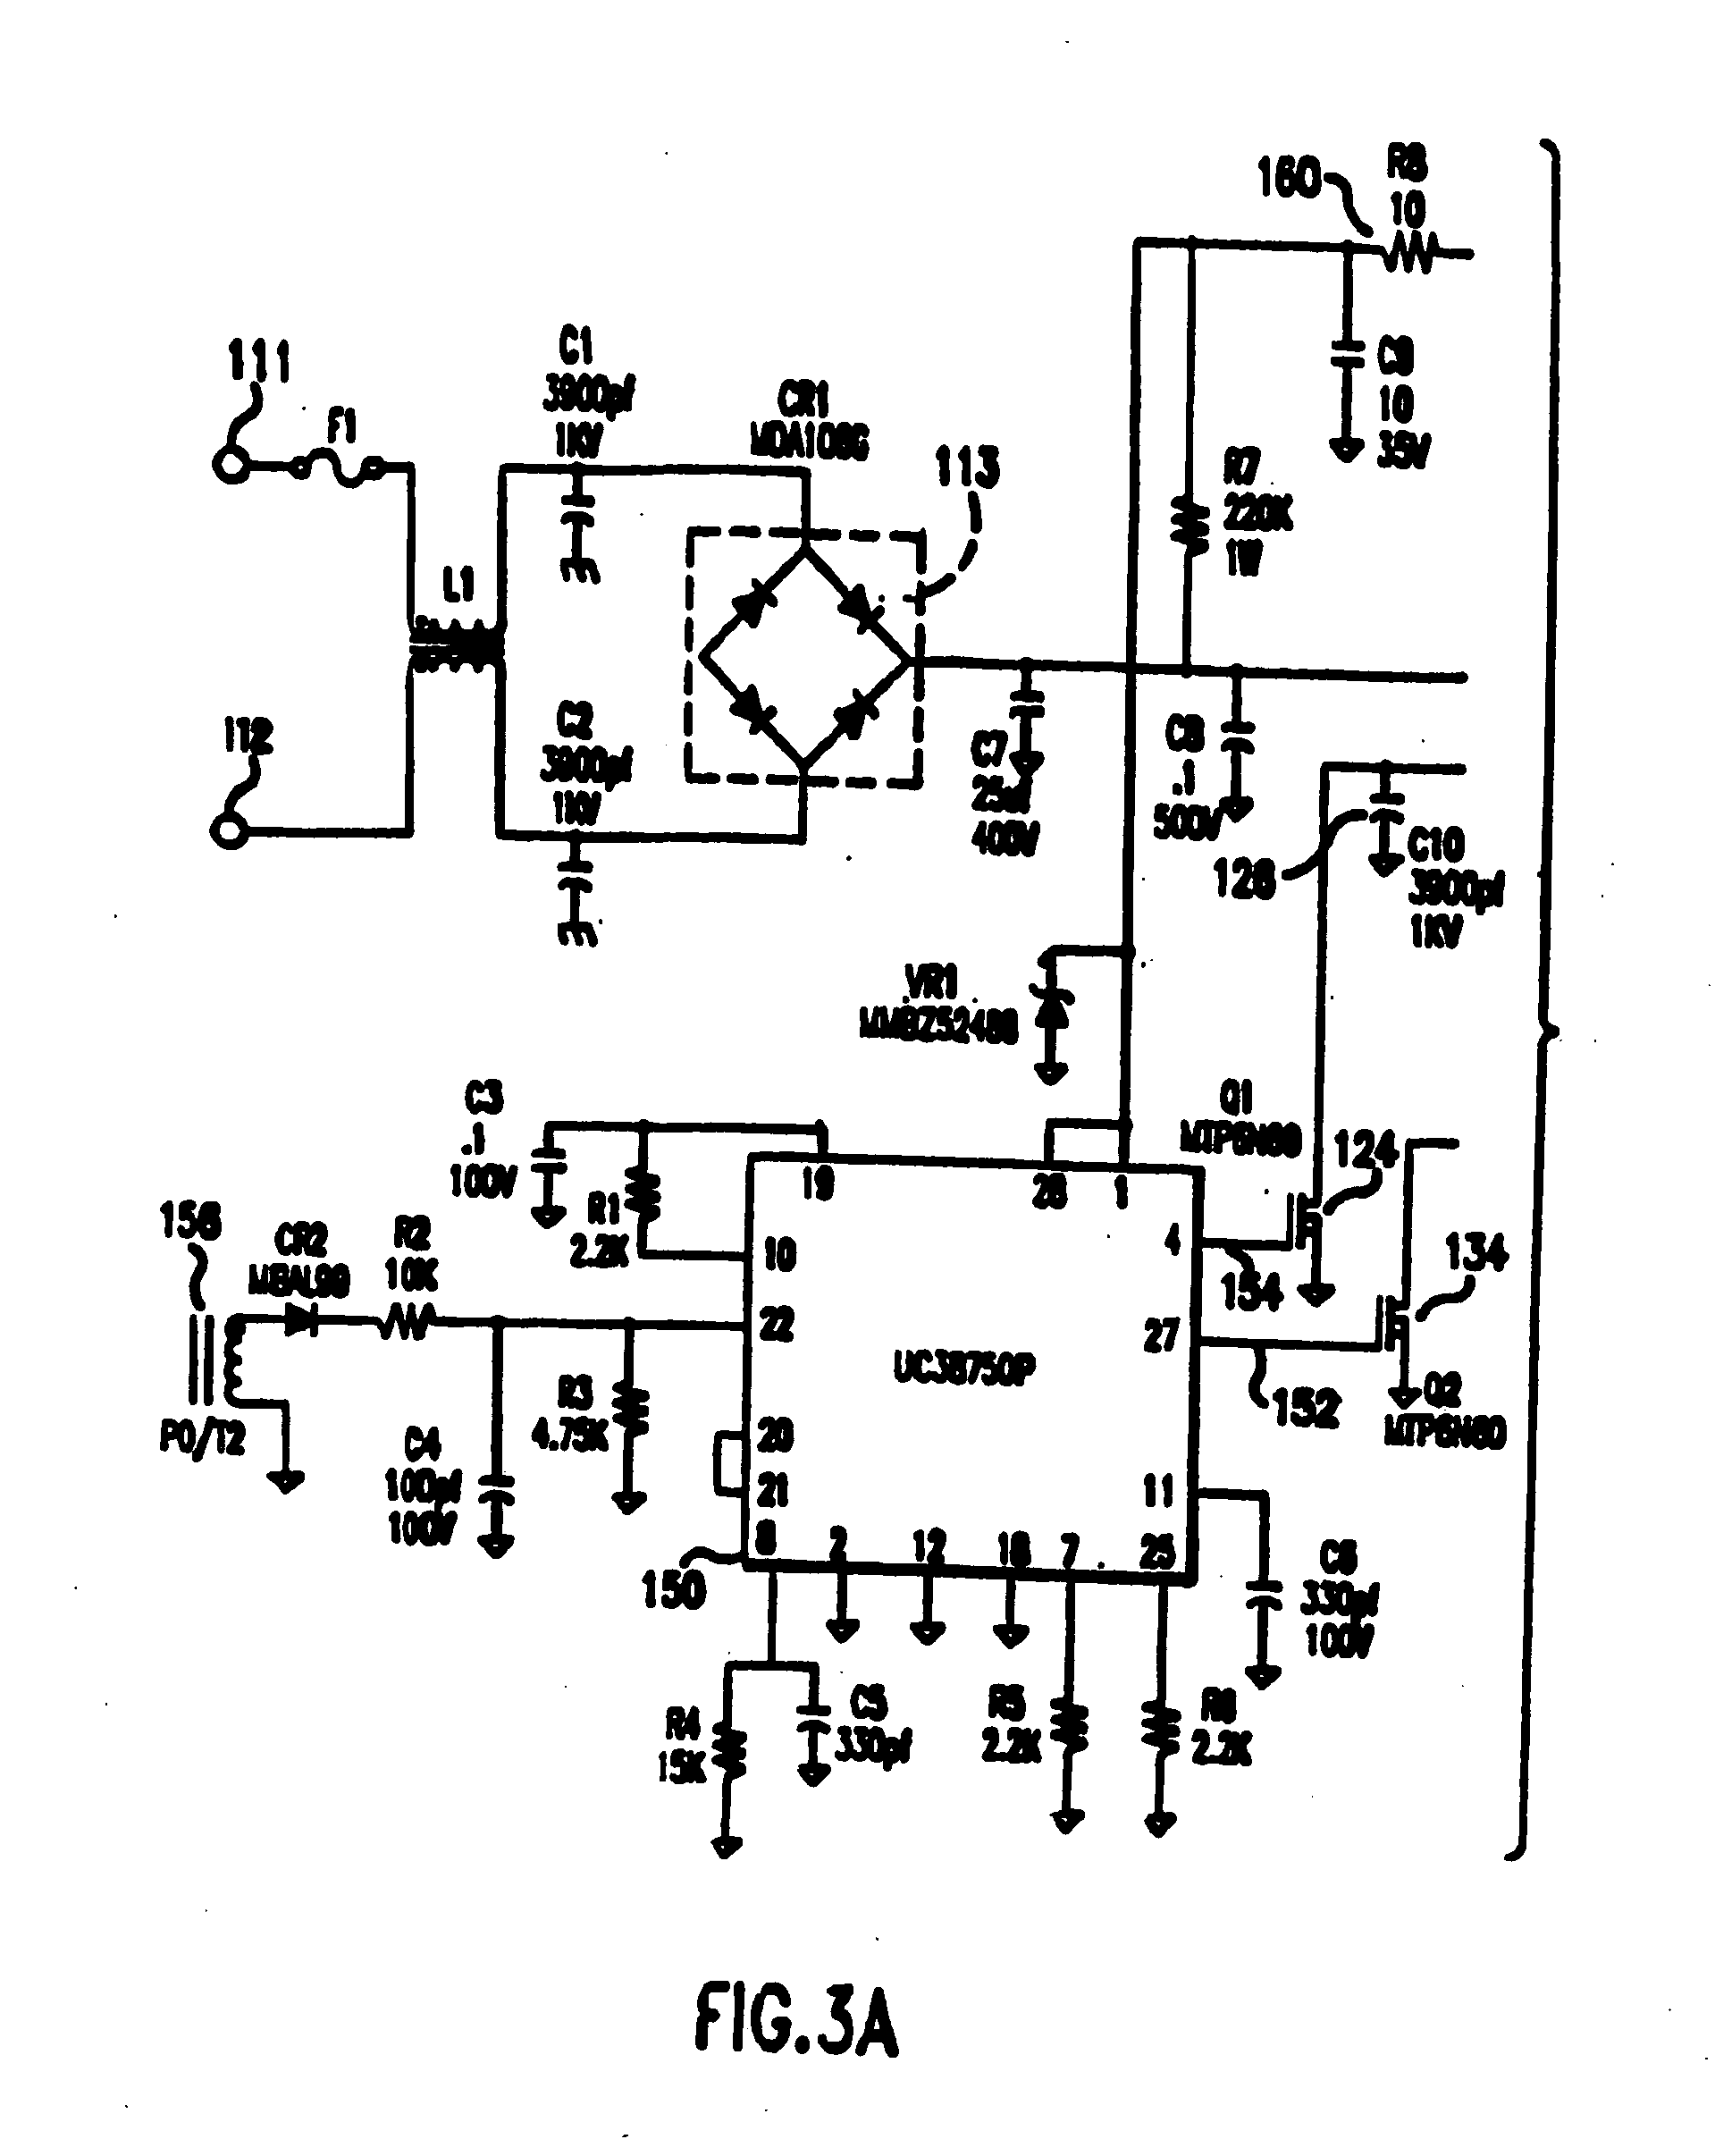 US20060215381A1 20060928 D00002 r13 112 switch wiring,switch free download printable wiring diagrams r13 112 switch wiring diagram at edmiracle.co